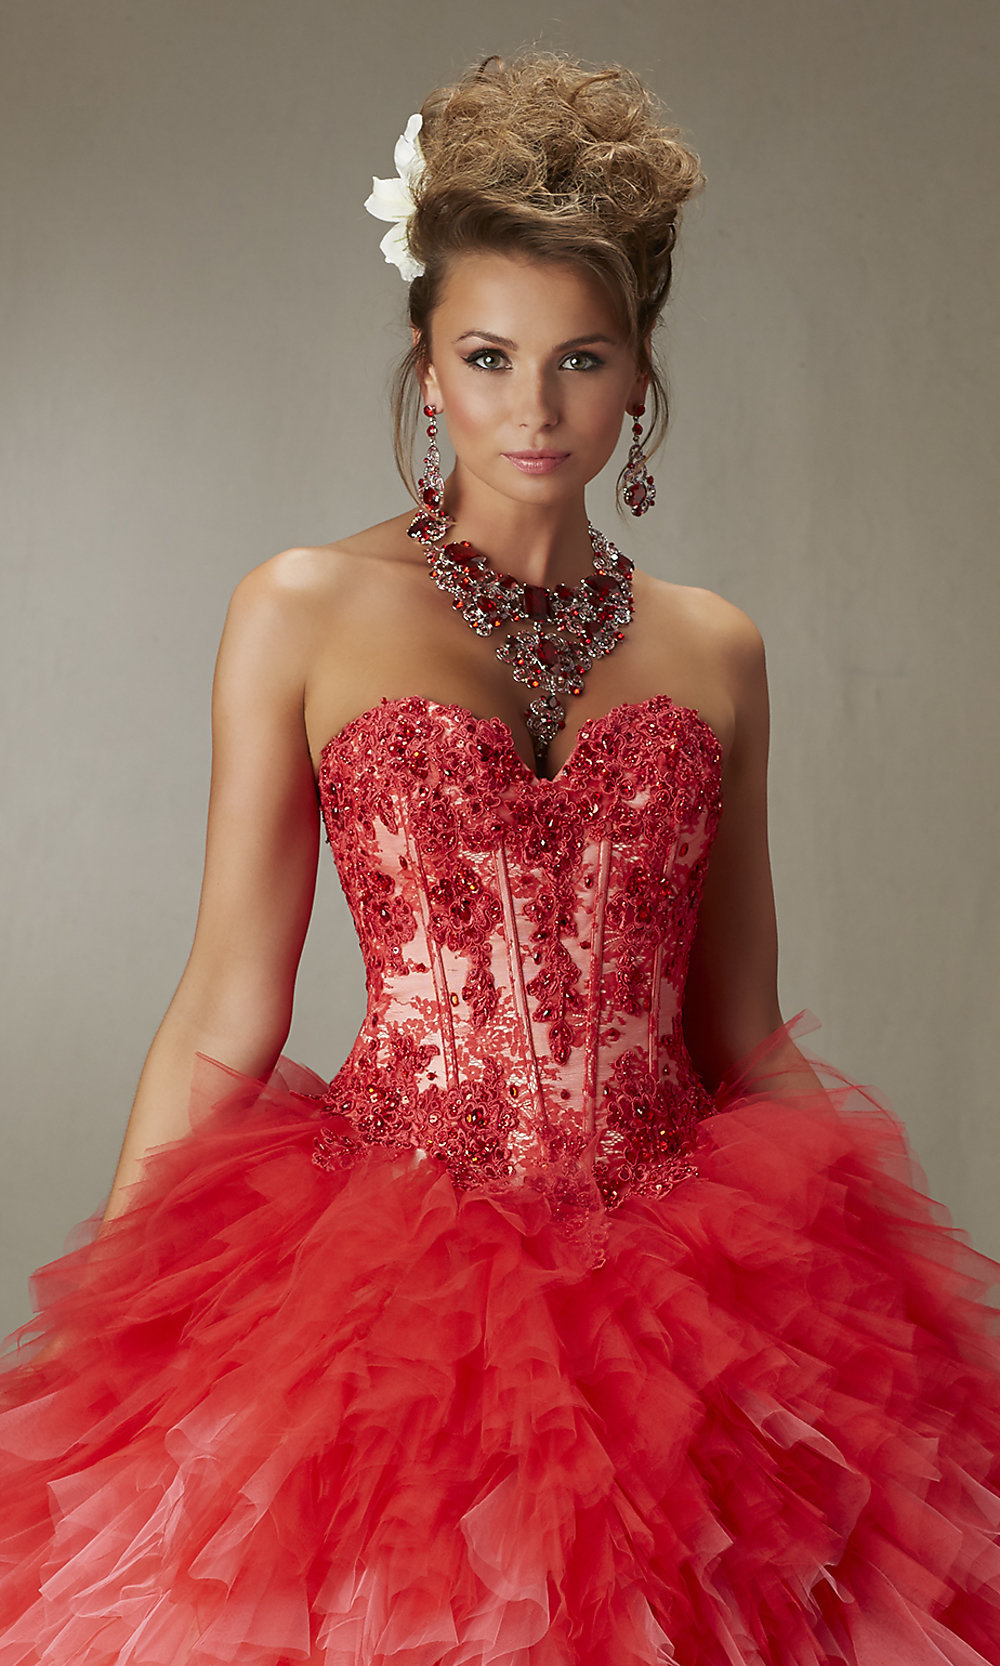 d0fd266e957 Quinceanera Dress Stores In Nj - Gomes Weine AG